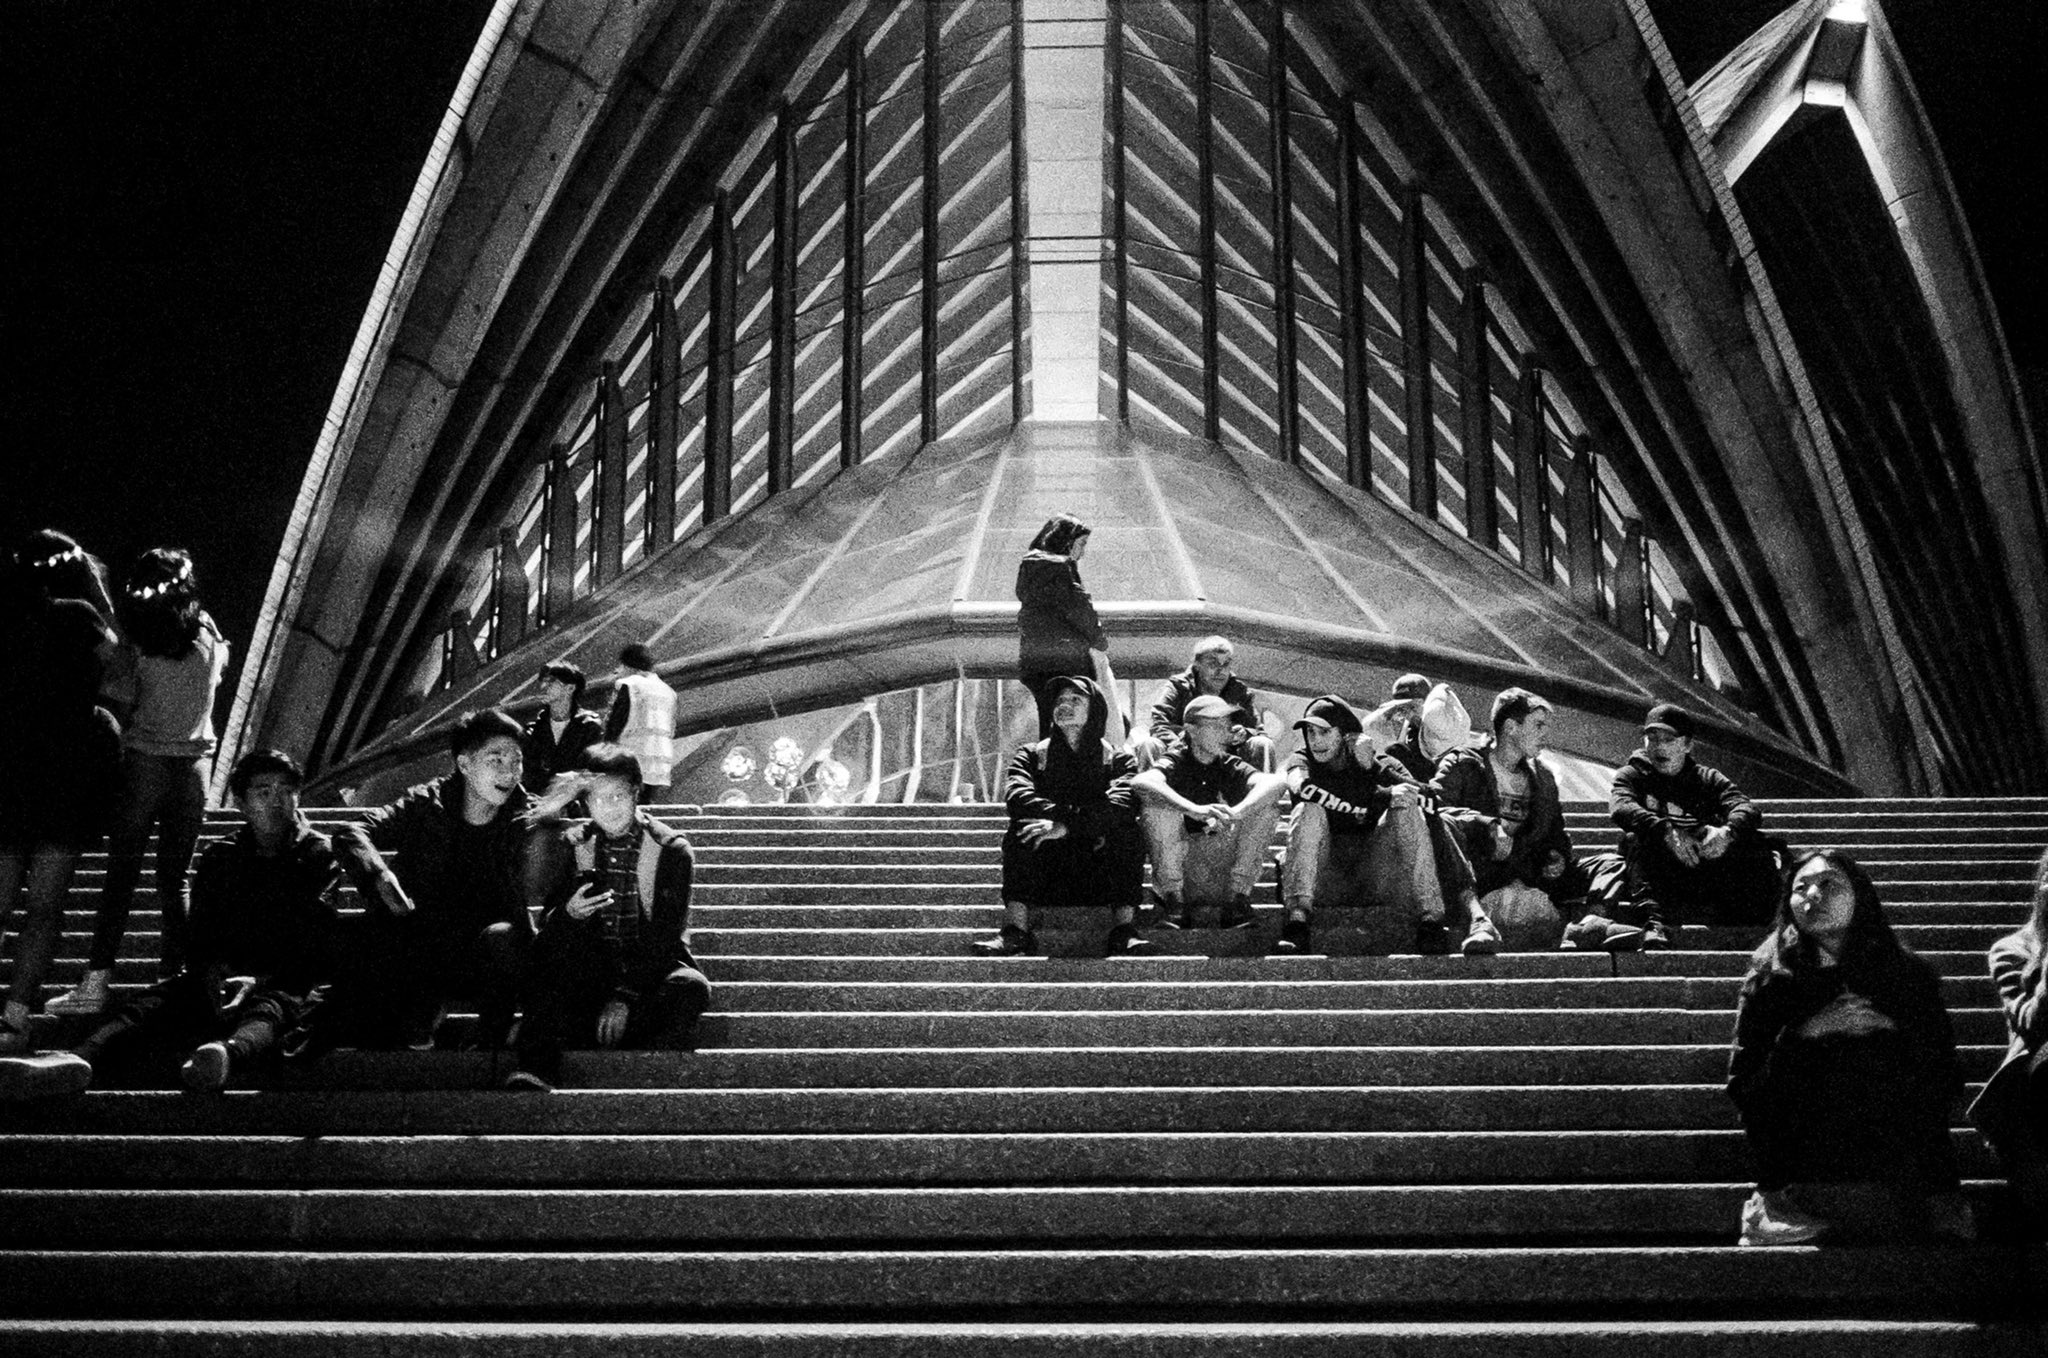 @billthoo Replying to @ILFORDPhoto Steps to humans are like reefs to fish. We are drawn to gather there. Sydney. May 2018. @ILFORDPhoto #delta3200. #M4 + #Voigtlander 35/2.5. #filmpeople #fridayfavourites #ilfordphoto #shootfilmbenice #believeinfilm #filmphotography #leica #ilovesydney #newsouthwales